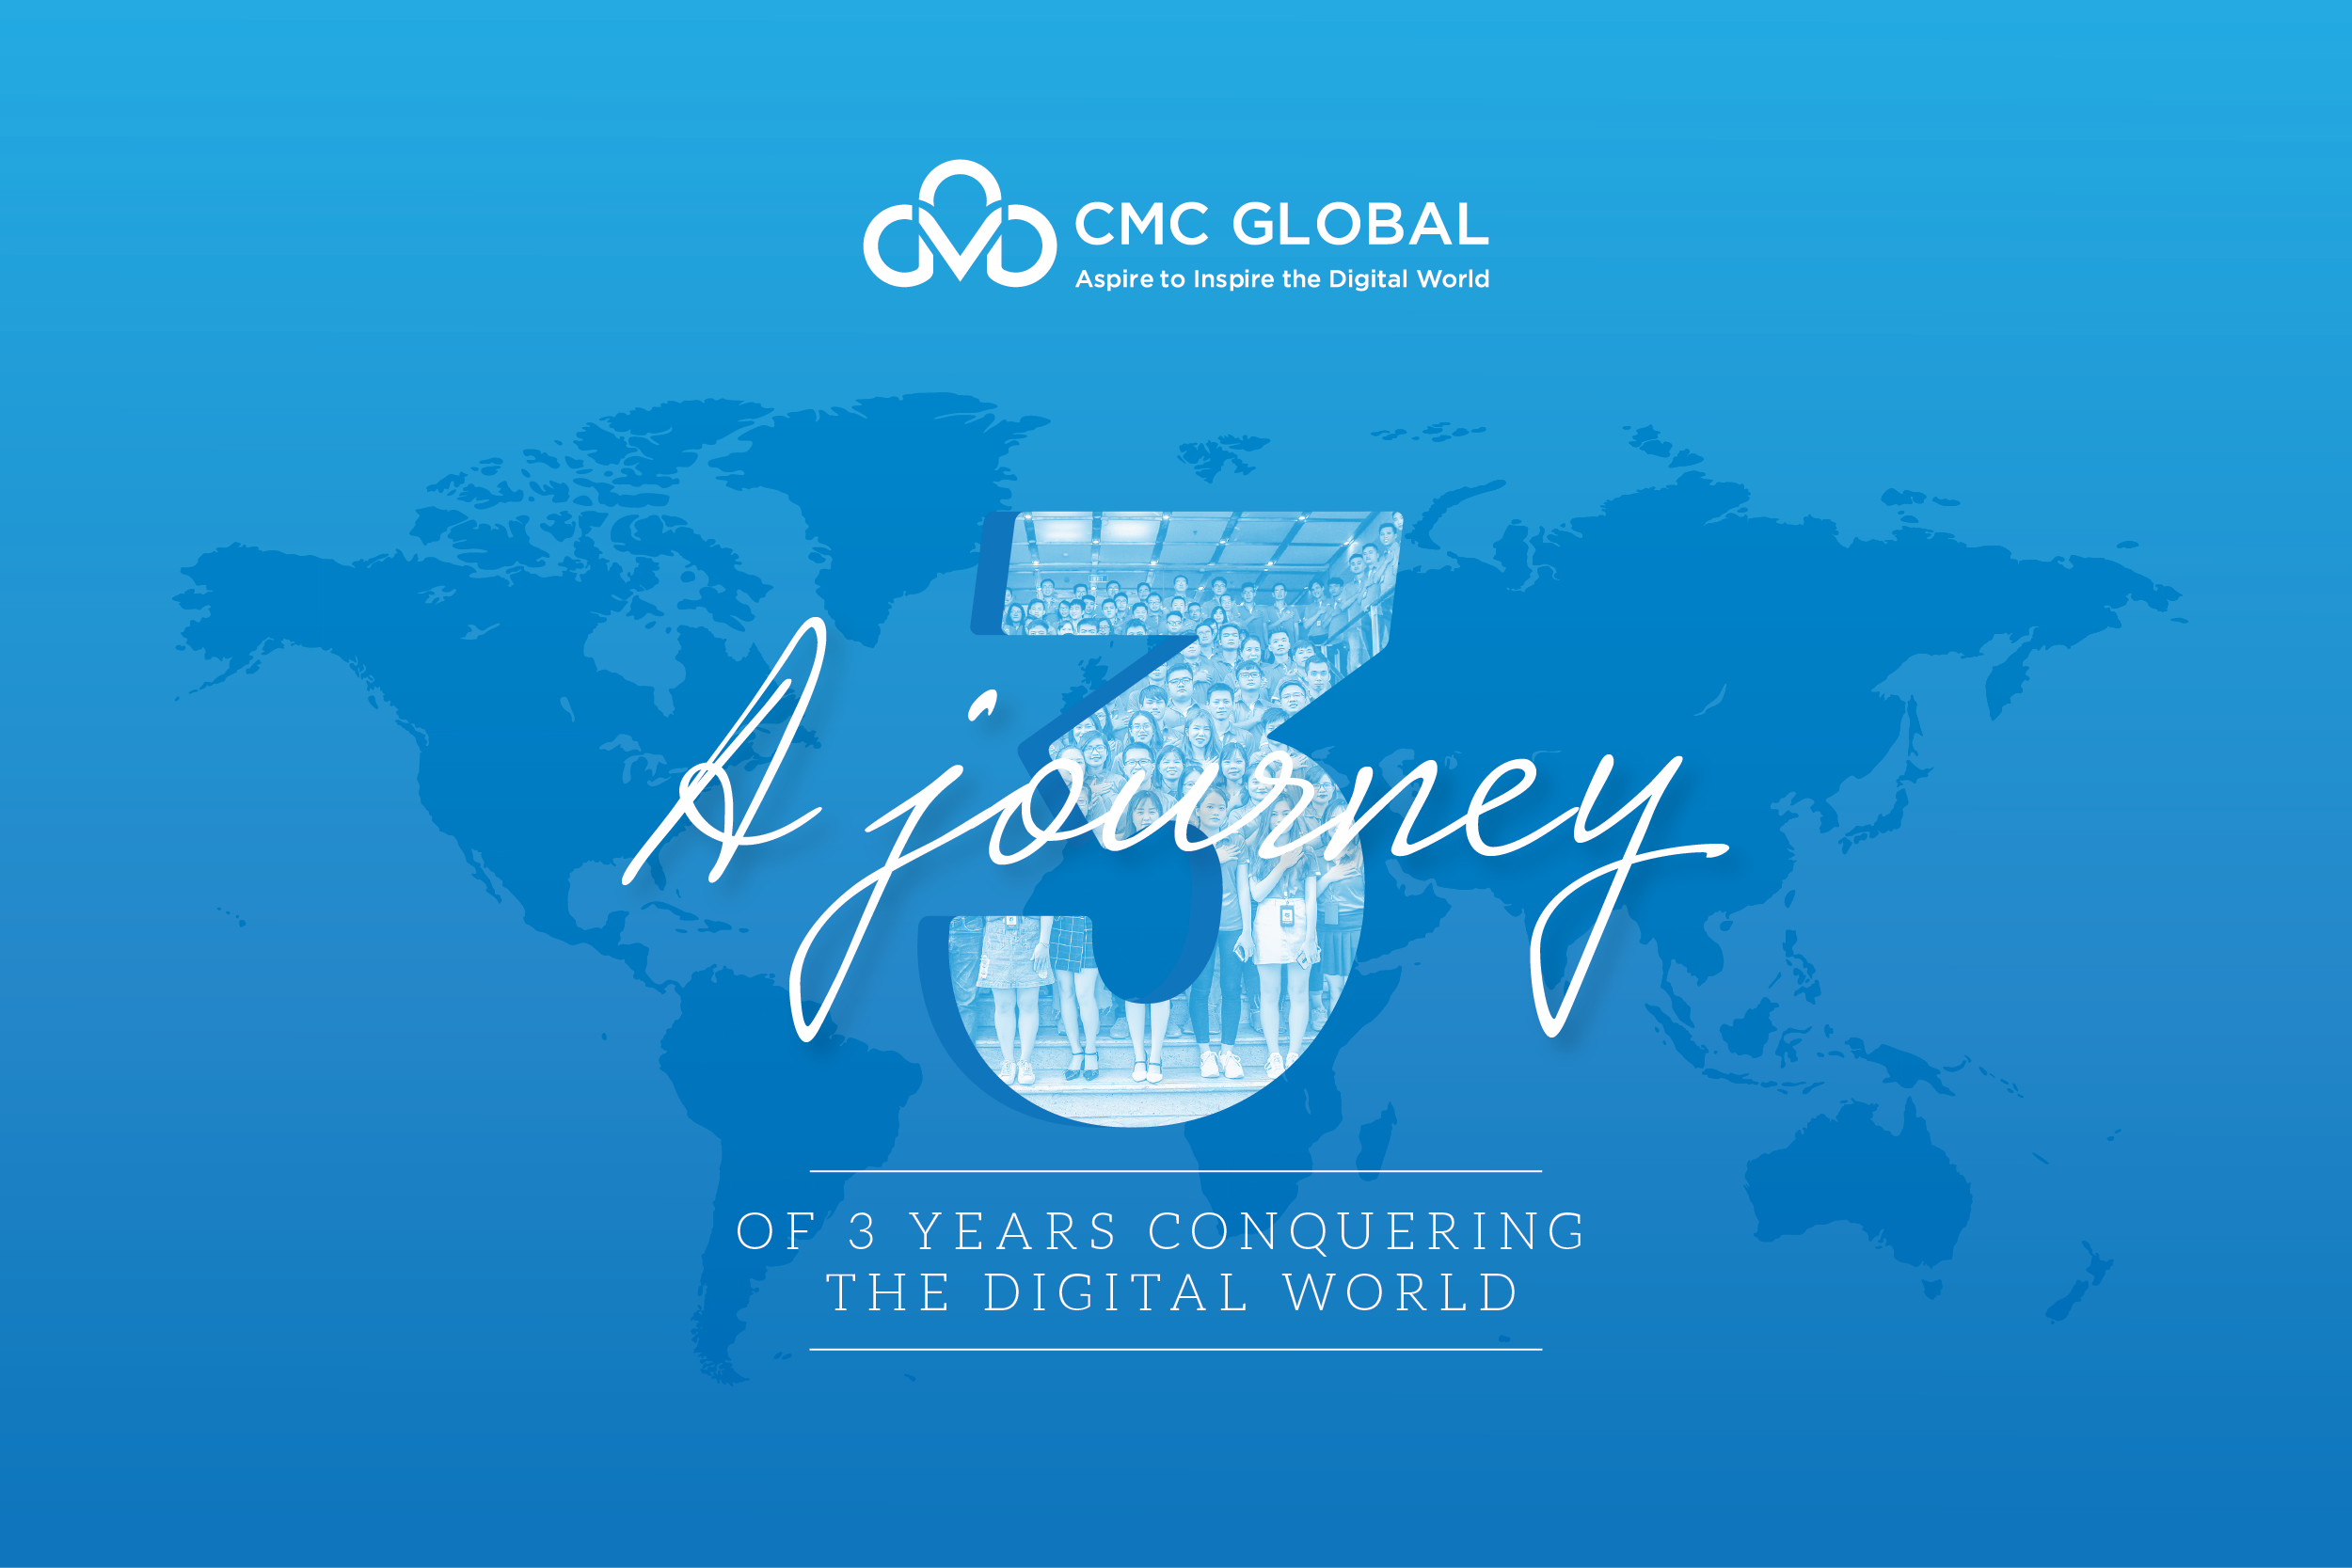 CMC Global celebrates 3 years anniversary